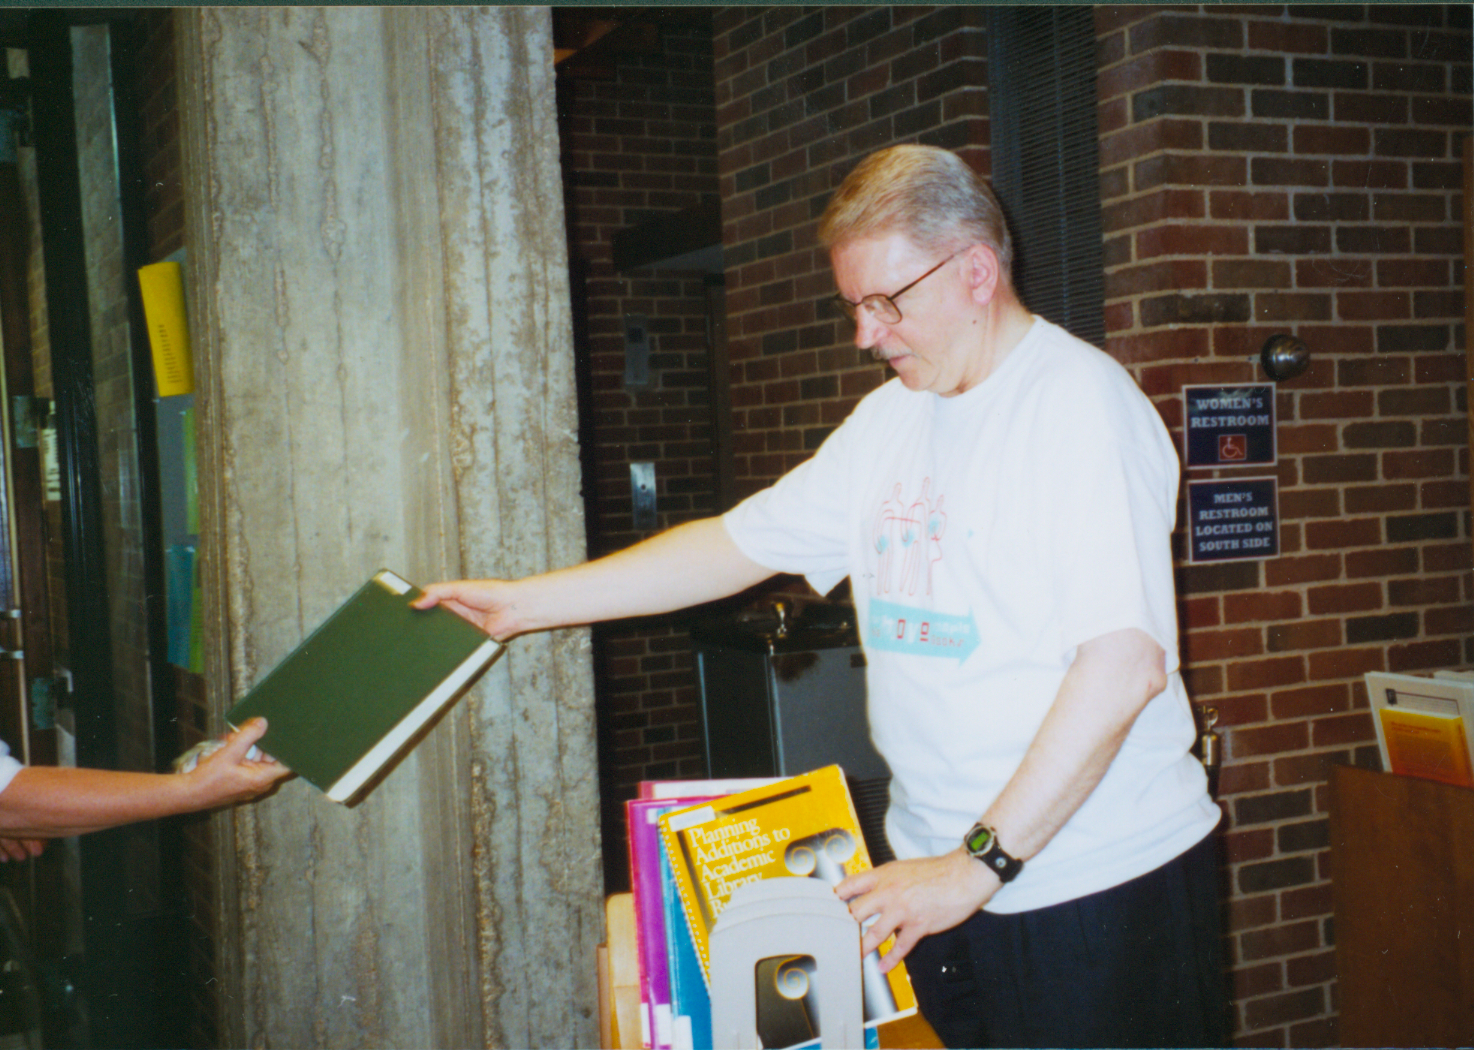 [Color photograph of Allen Mueller handing off a book for the book chain]